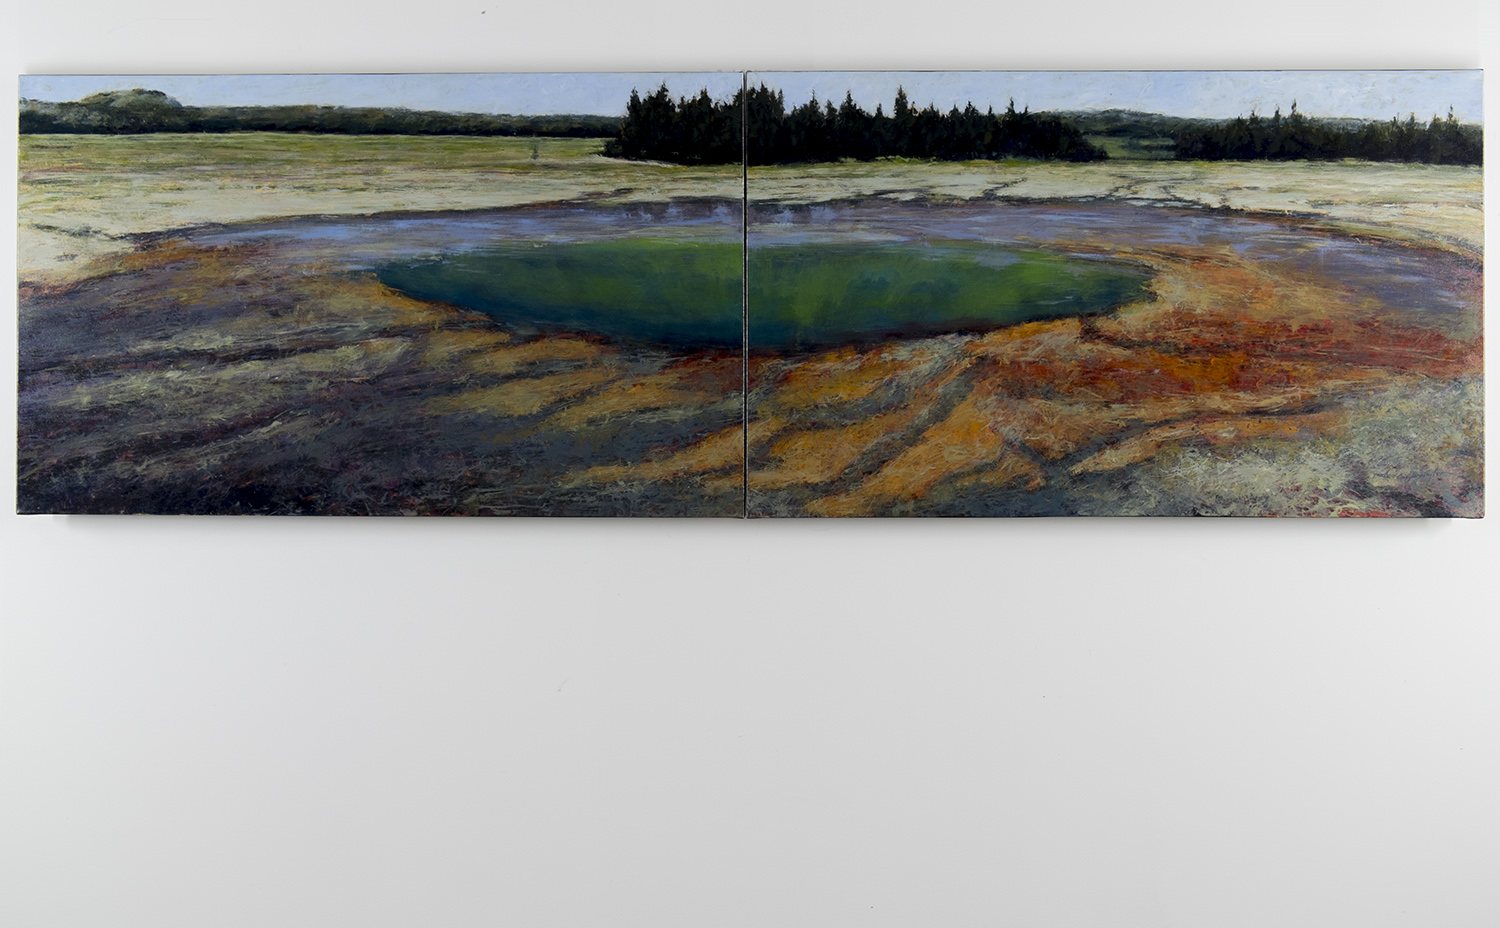 Grand Prismatic Hot Spring, 36 x 112 inches,diptych, oil on canvas.Available through the artist.